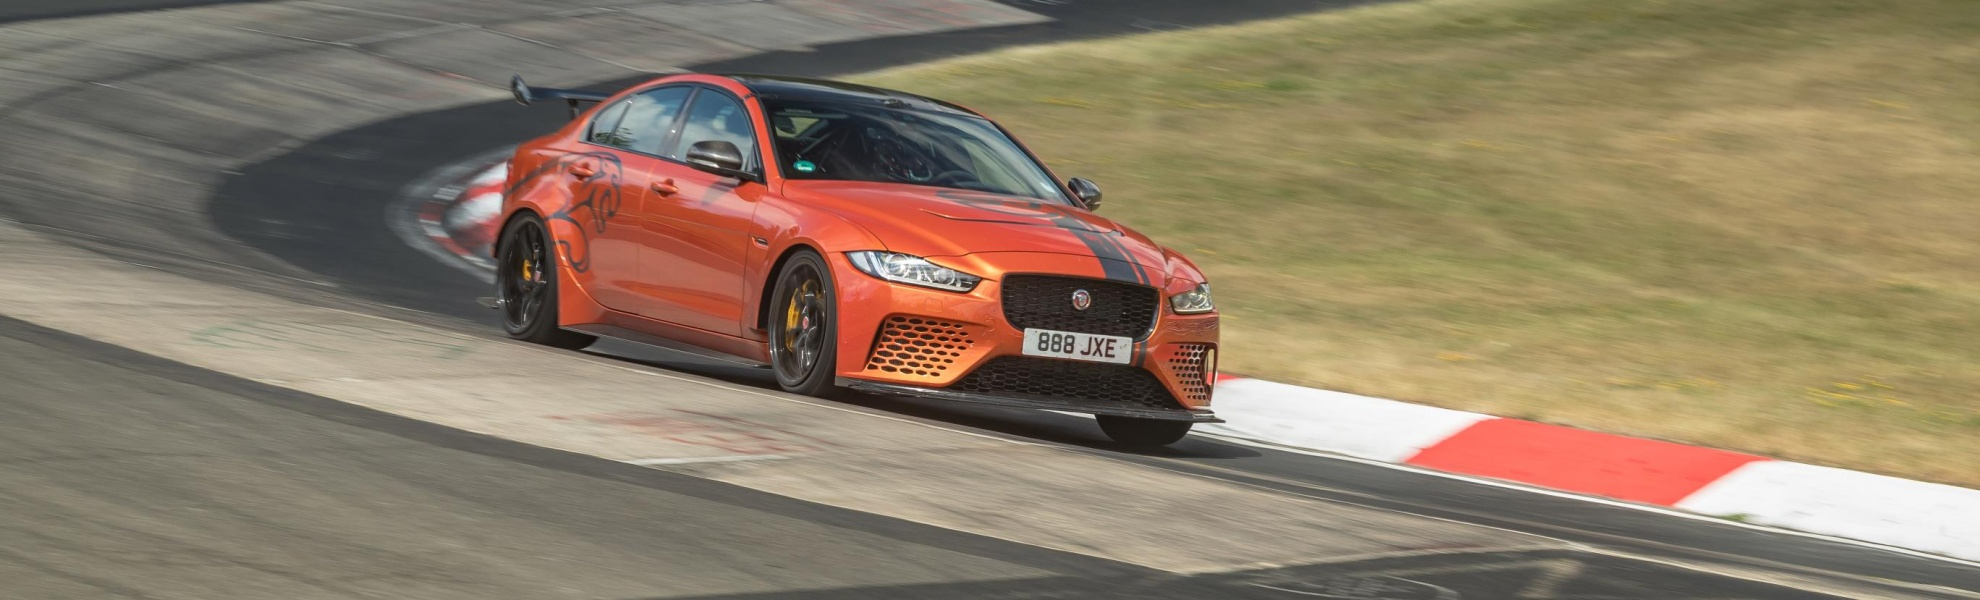 J_Project8_19MY_Nurburgring_Record_2019_240719_04.jpg